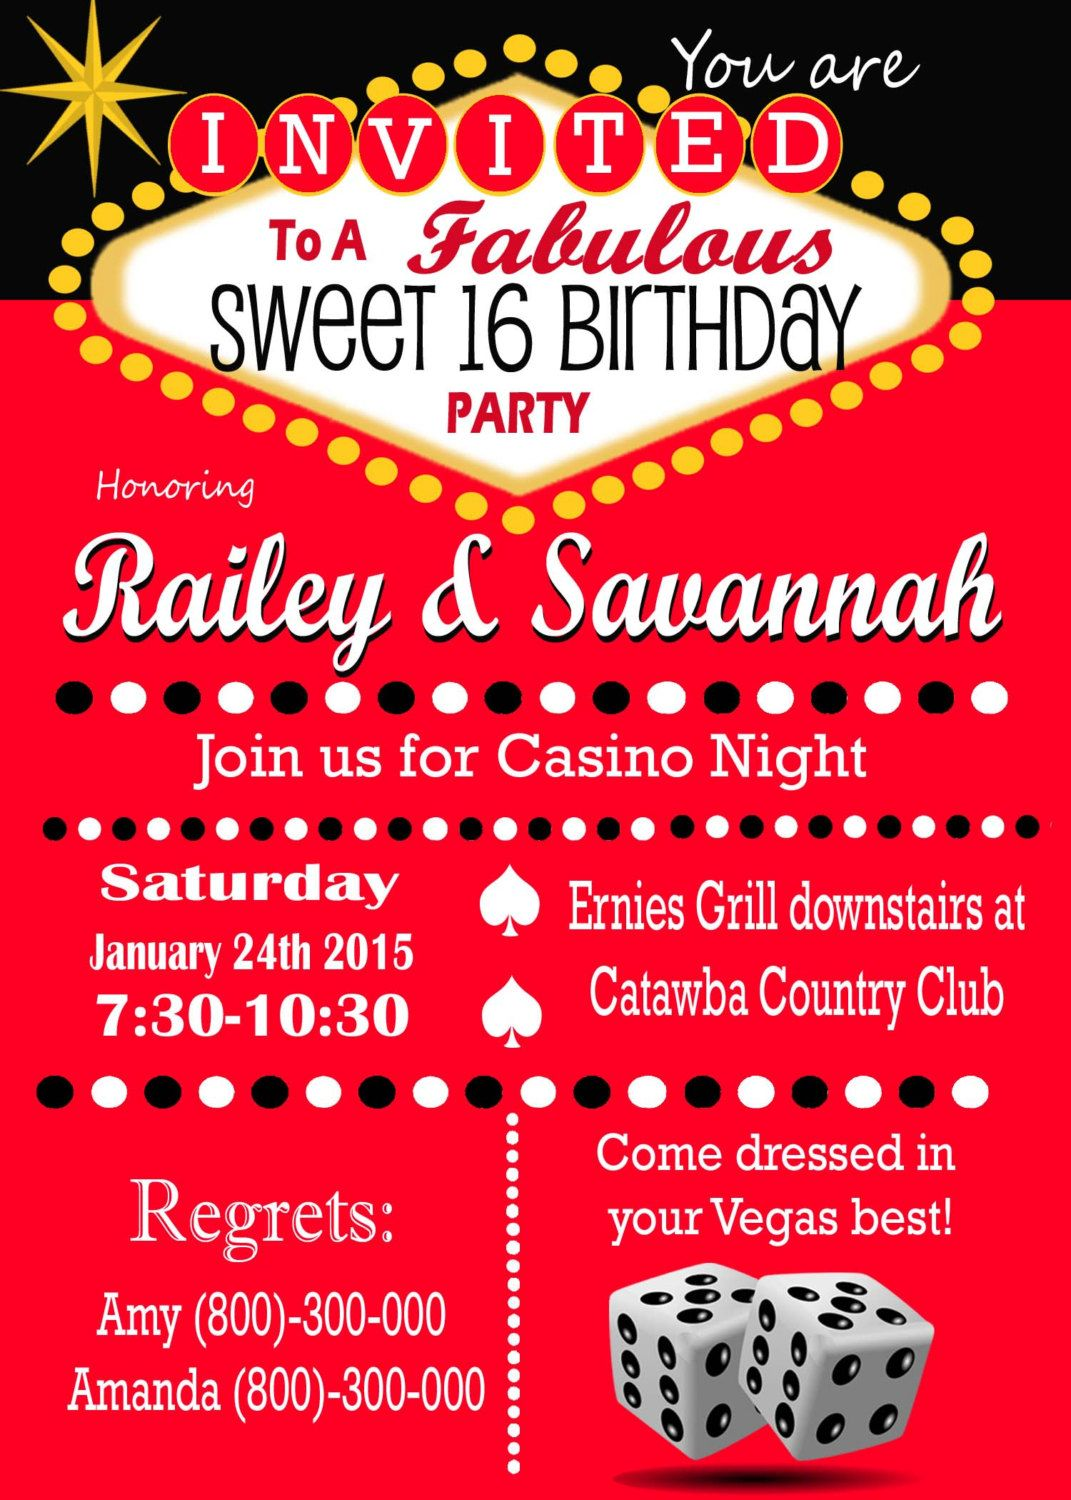 Image result for casino theme party invitation graduation image result for casino theme party invitation monicamarmolfo Image collections